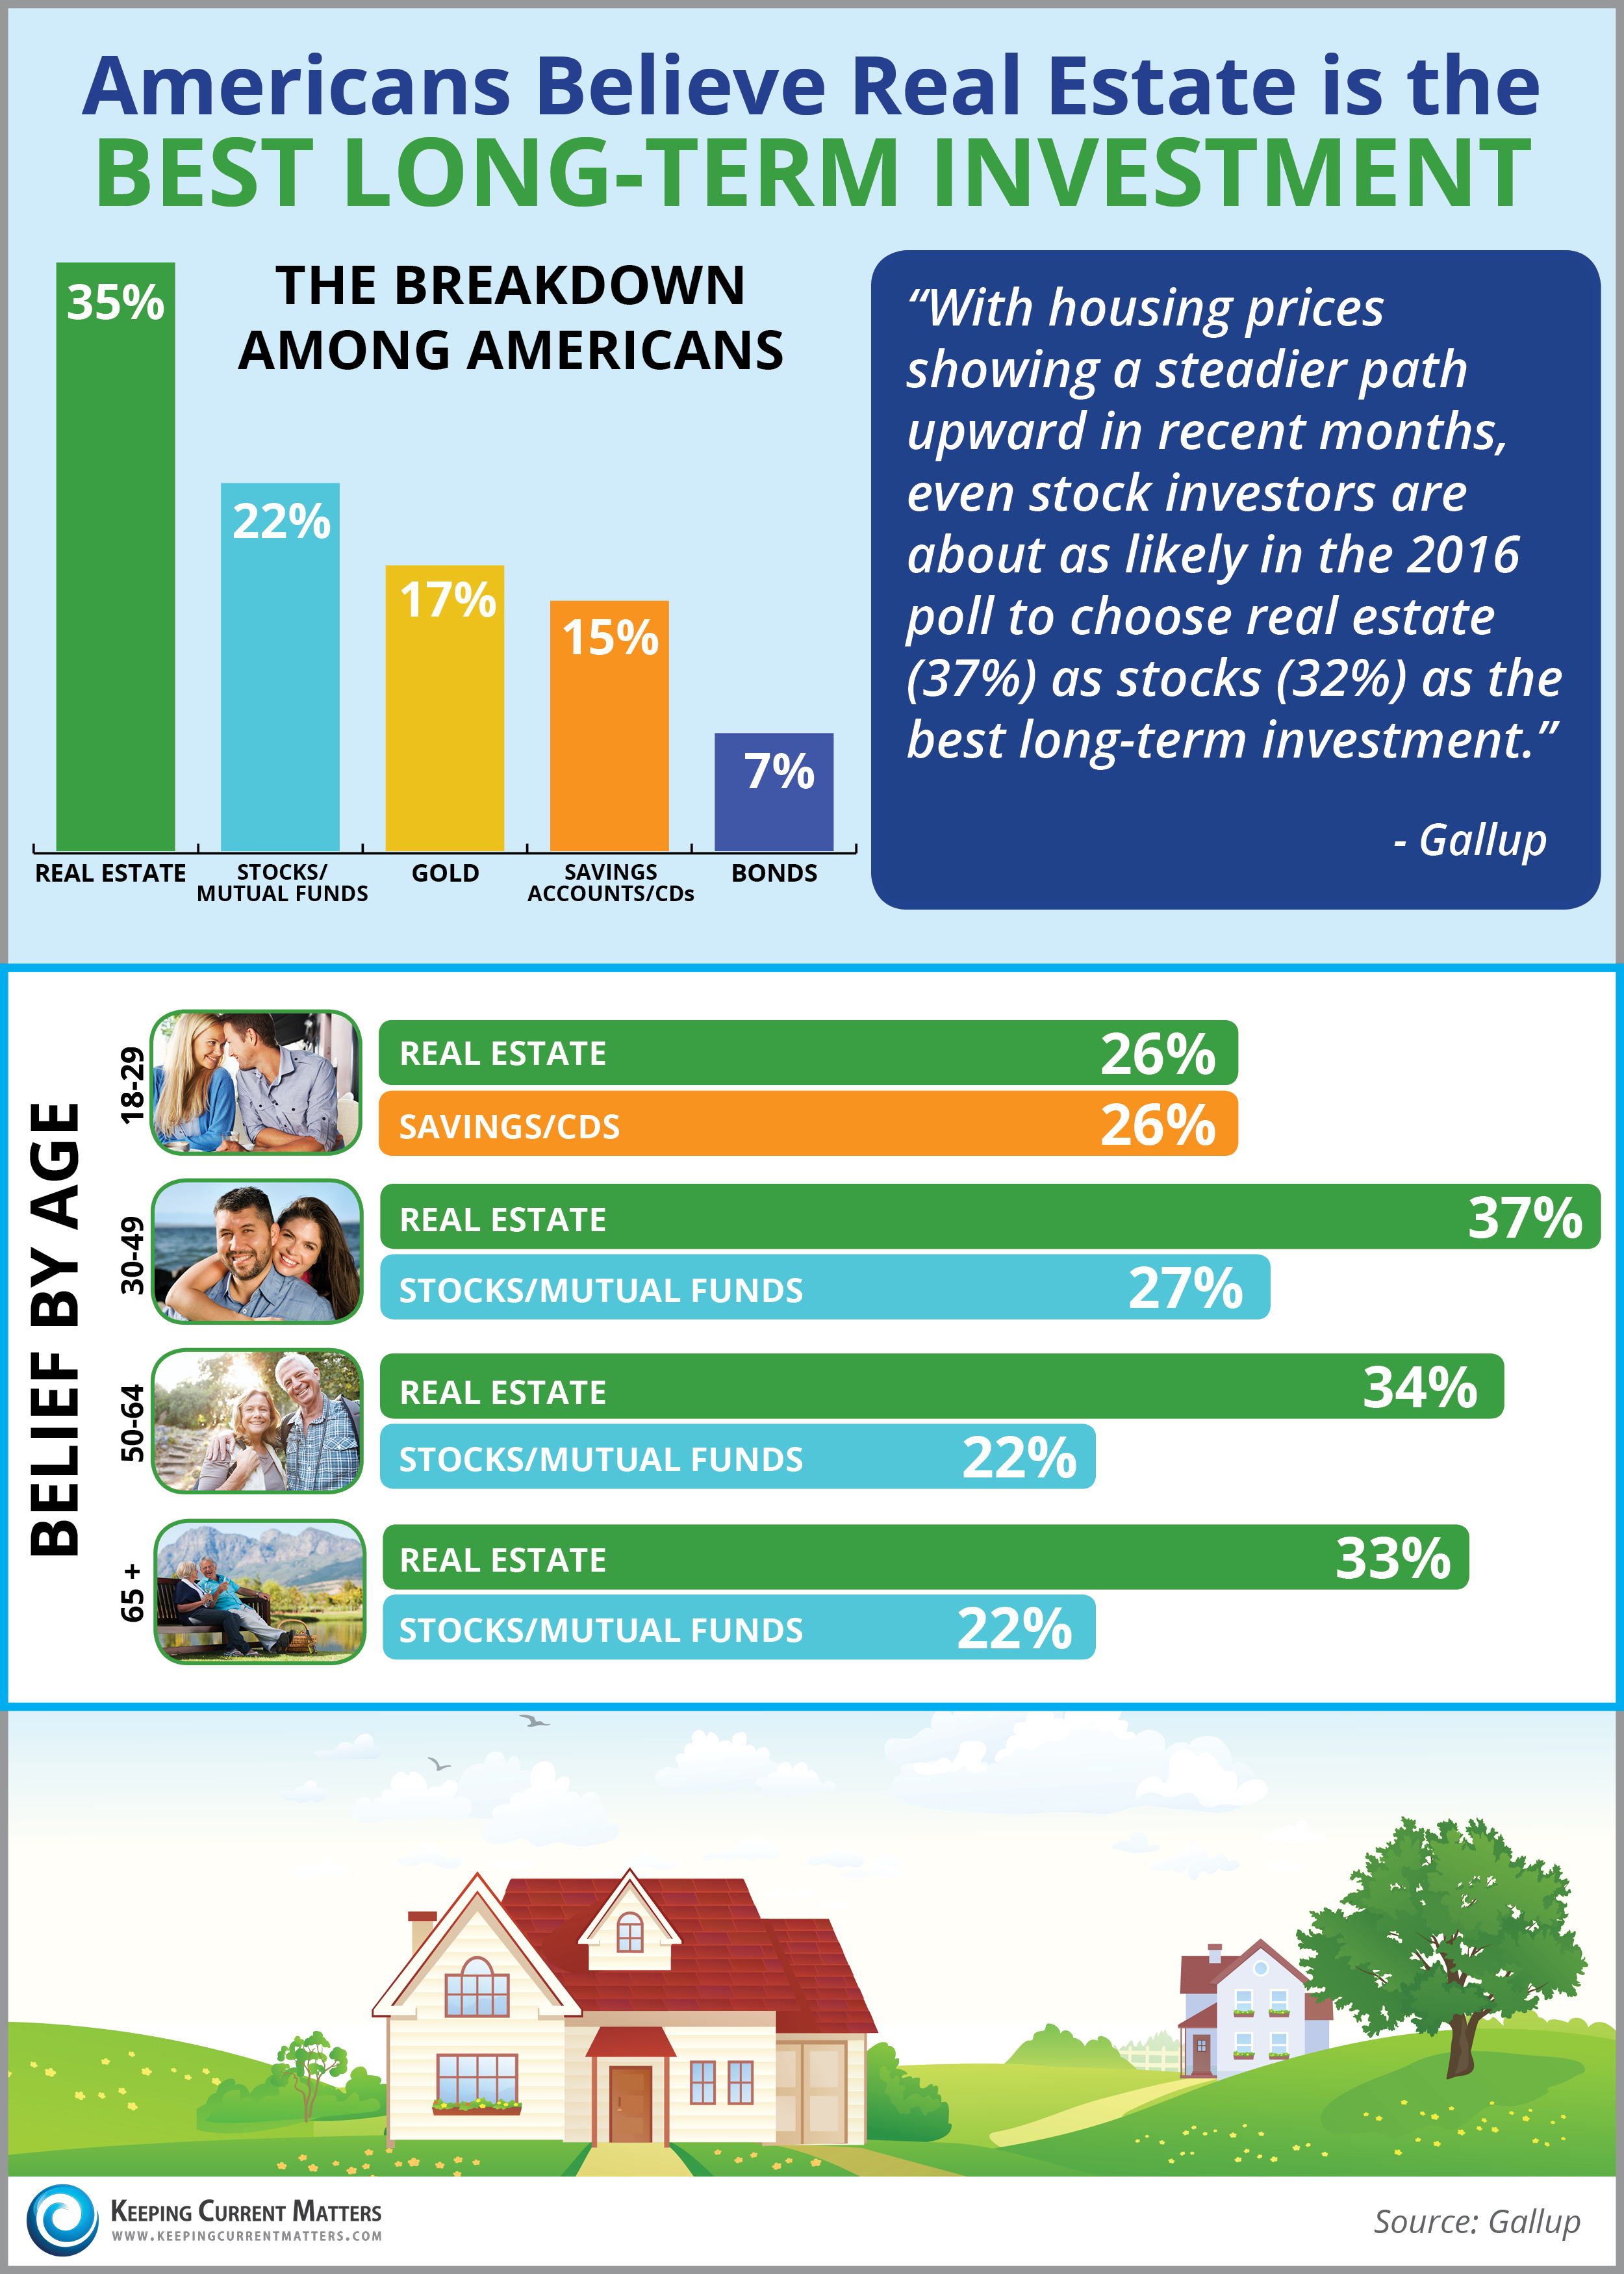 Americans Believe Real Estate is the Best Long-Term Investment | Keeping Current Matters